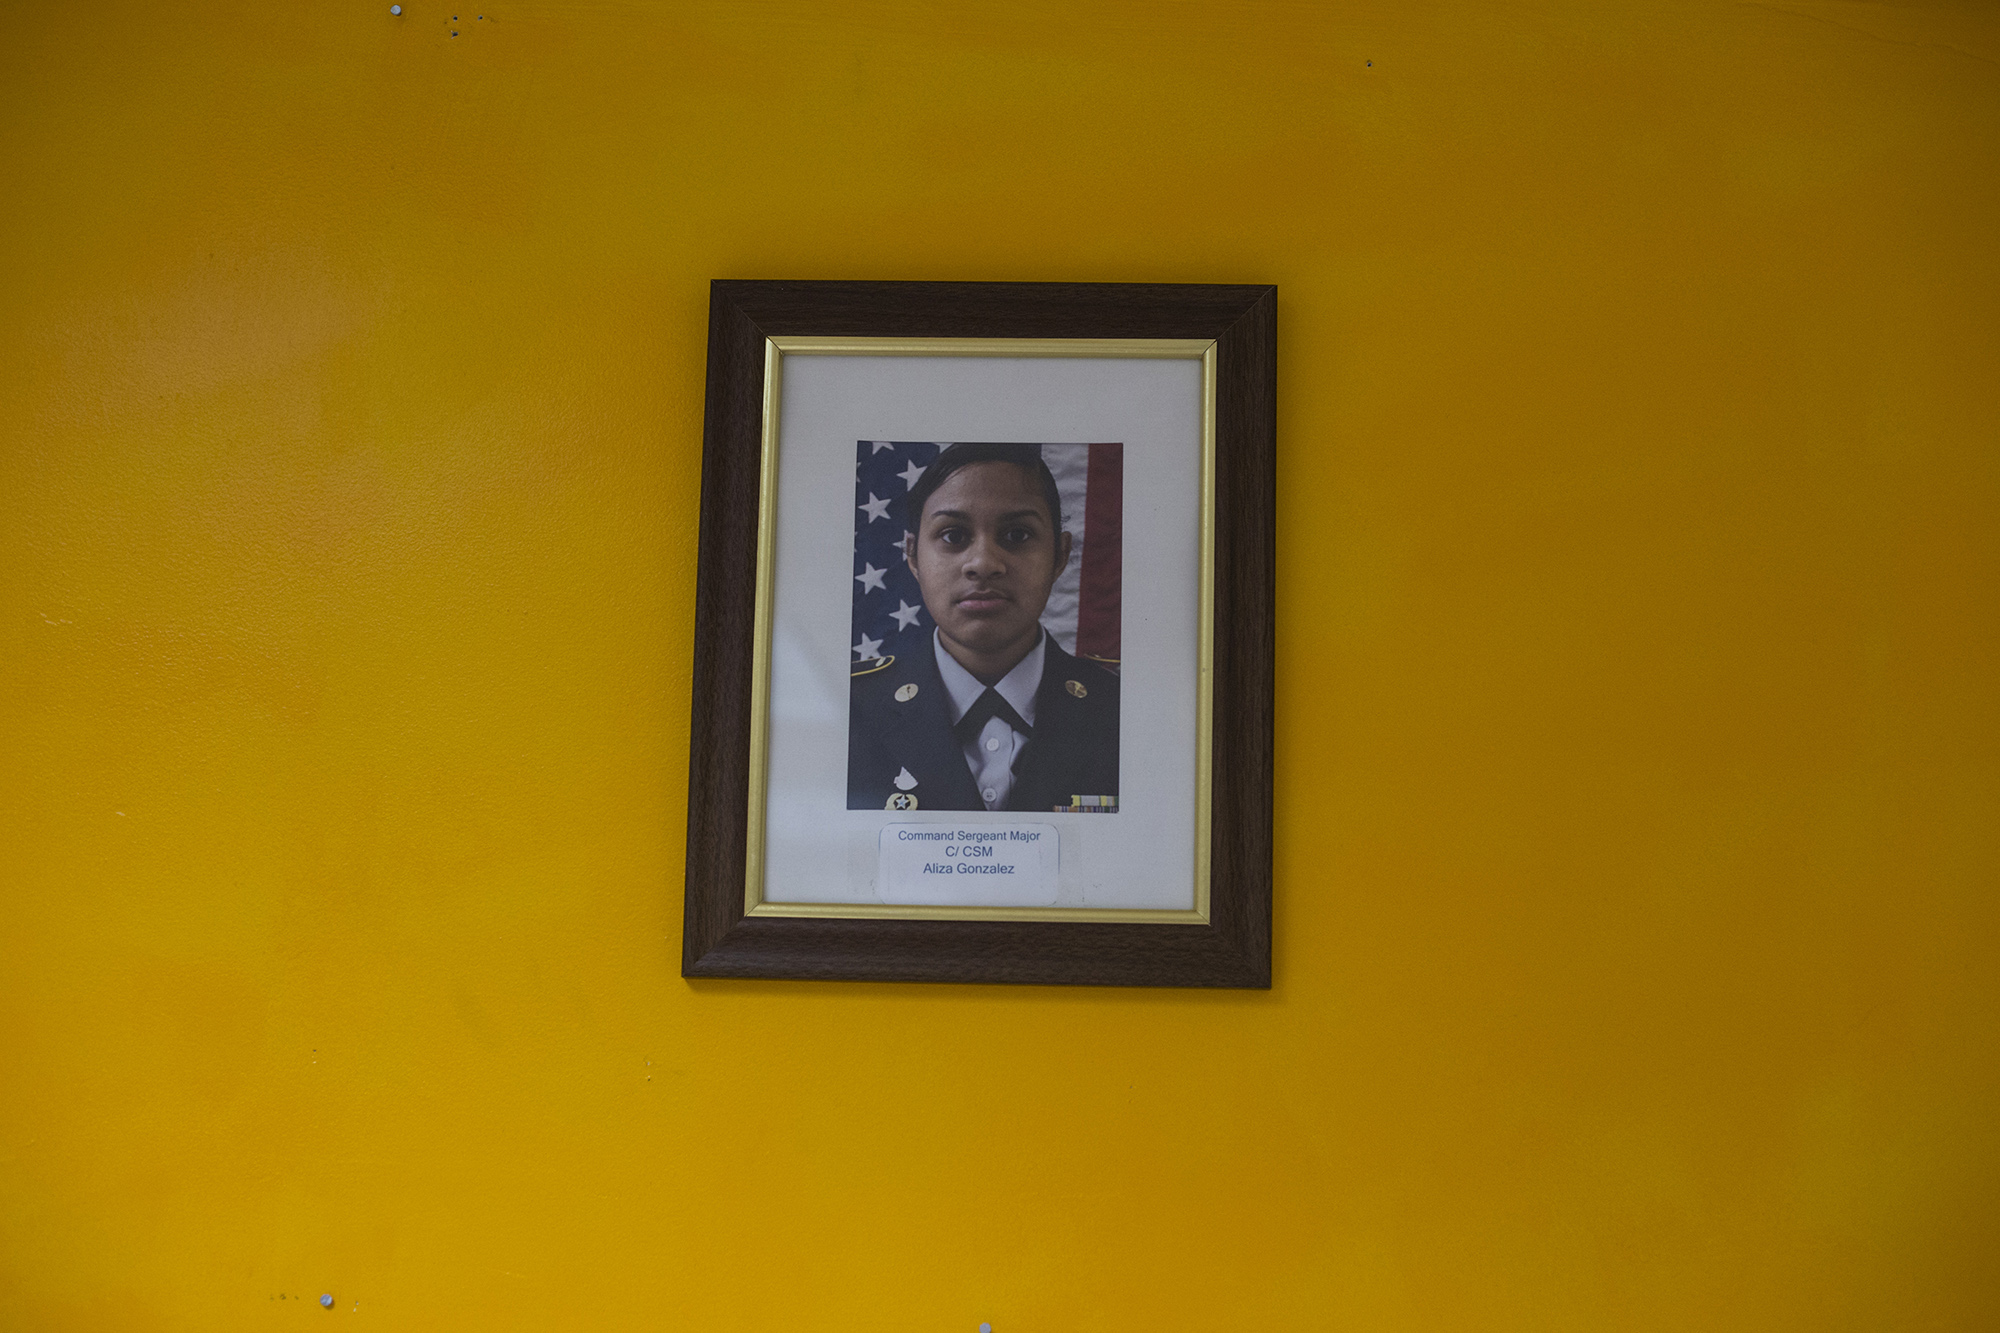 A single photograph featuring Command Sergeant Major Aliza Gonzalez hangs on the wall in a JROTC classroom in Springfield, Mass., on Monday, September, 11, 2017. (Brittany Greeson/GroundTruth)